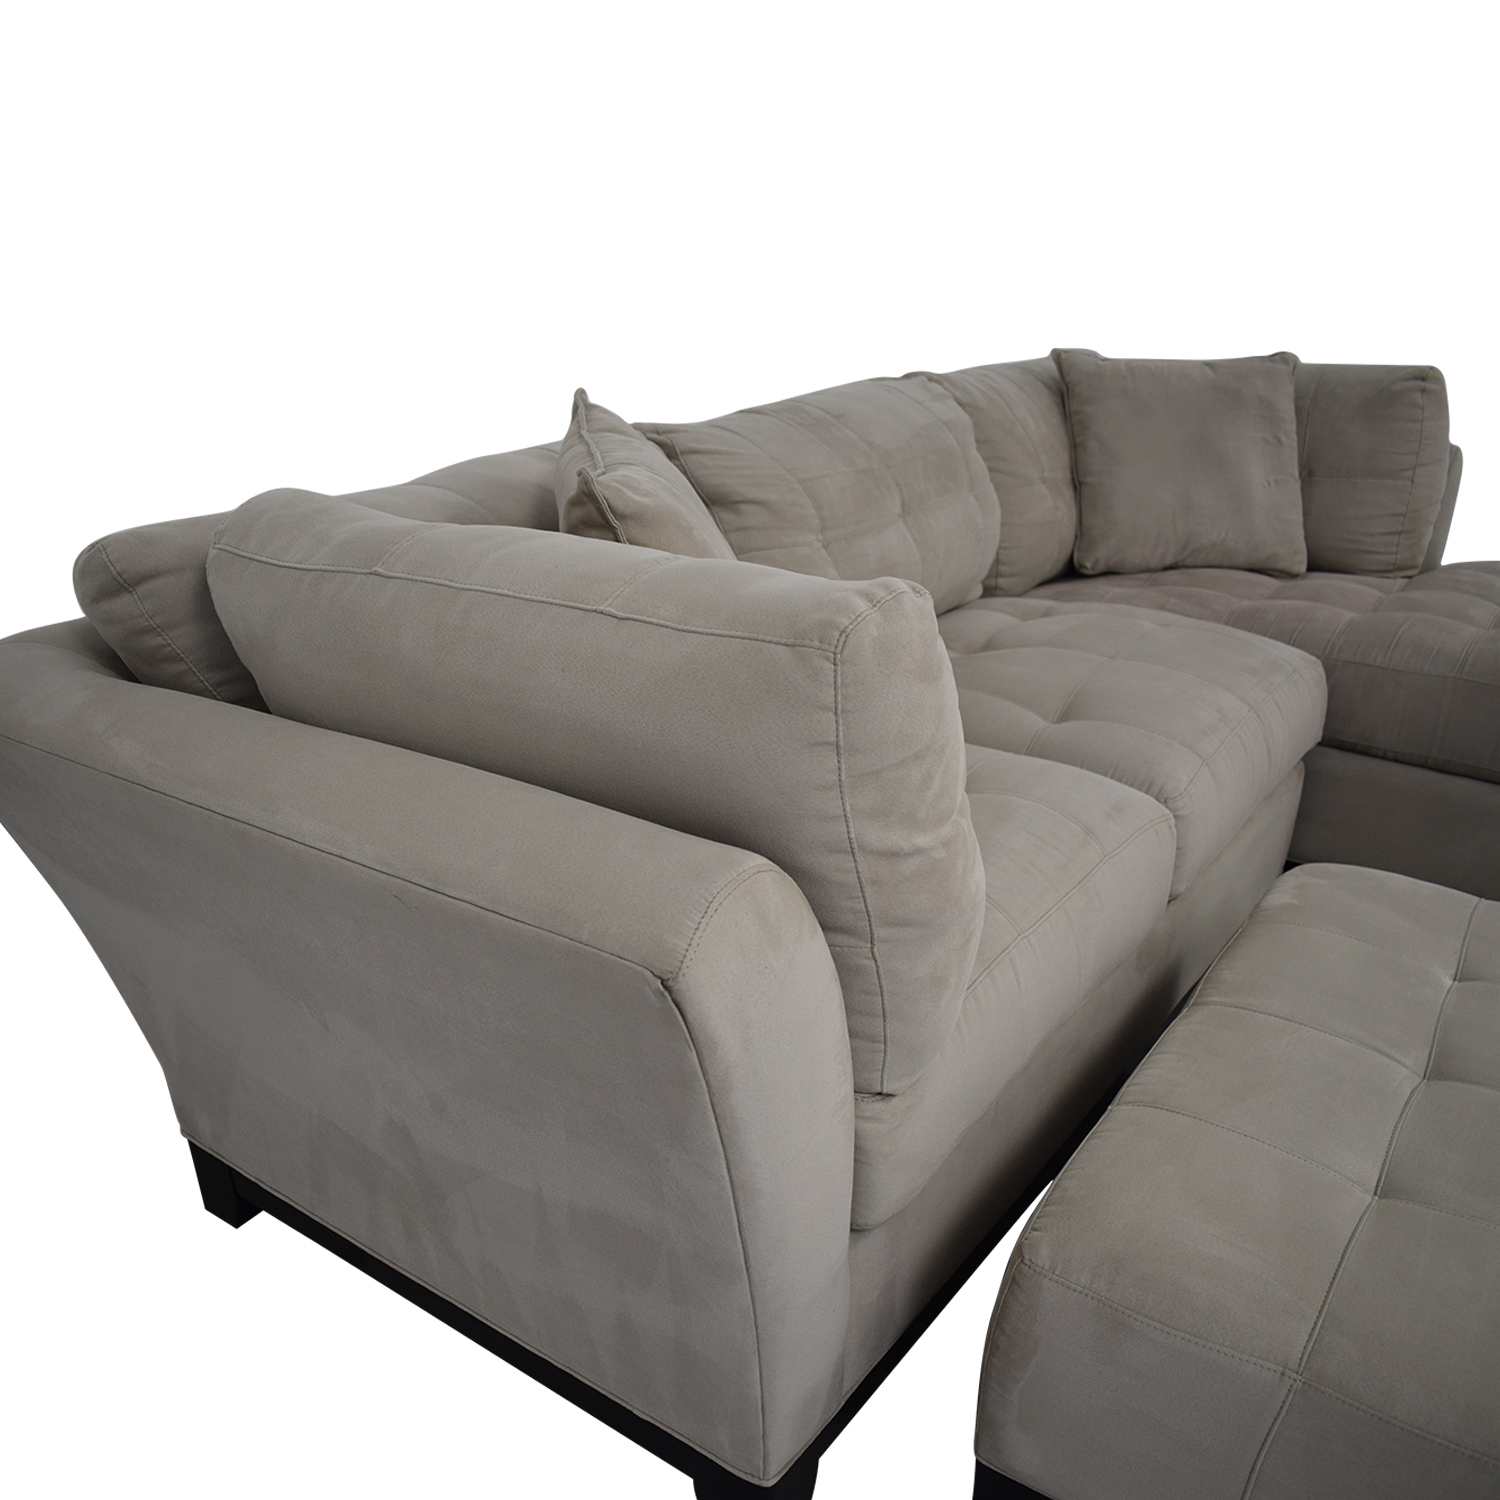 Raymour & Flanigan Raymour & Flanigan Sectional Sofa with Chaise and Cocktail Ottoman coupon